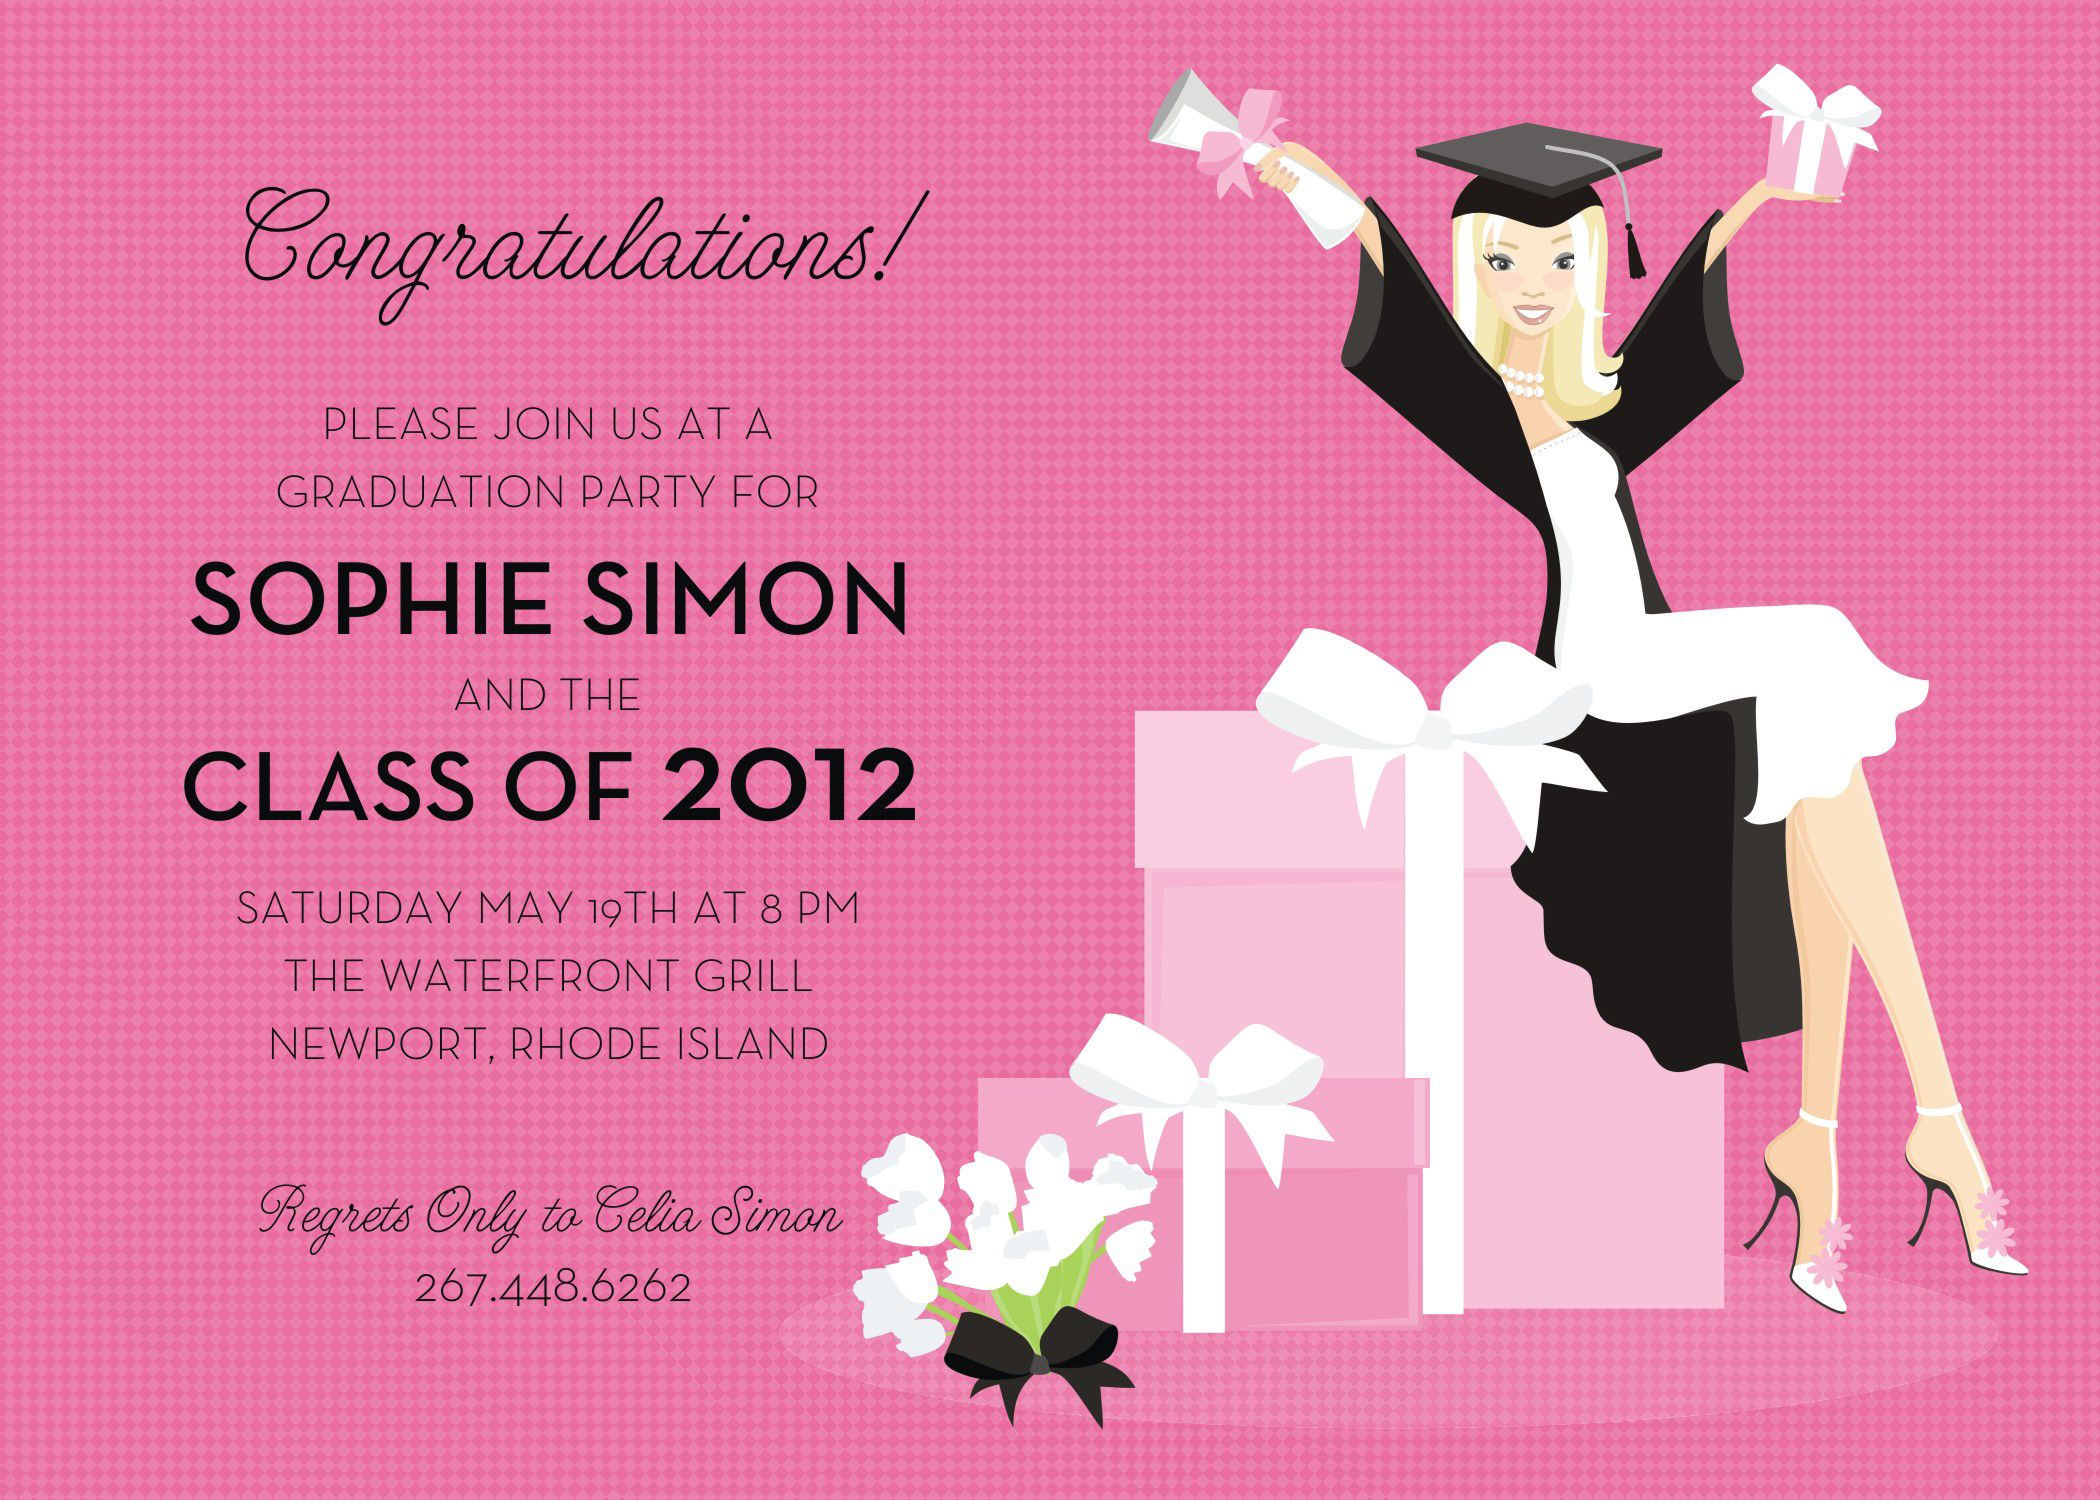 Graduation Party Invitation Wording – Invitation to Graduation Party